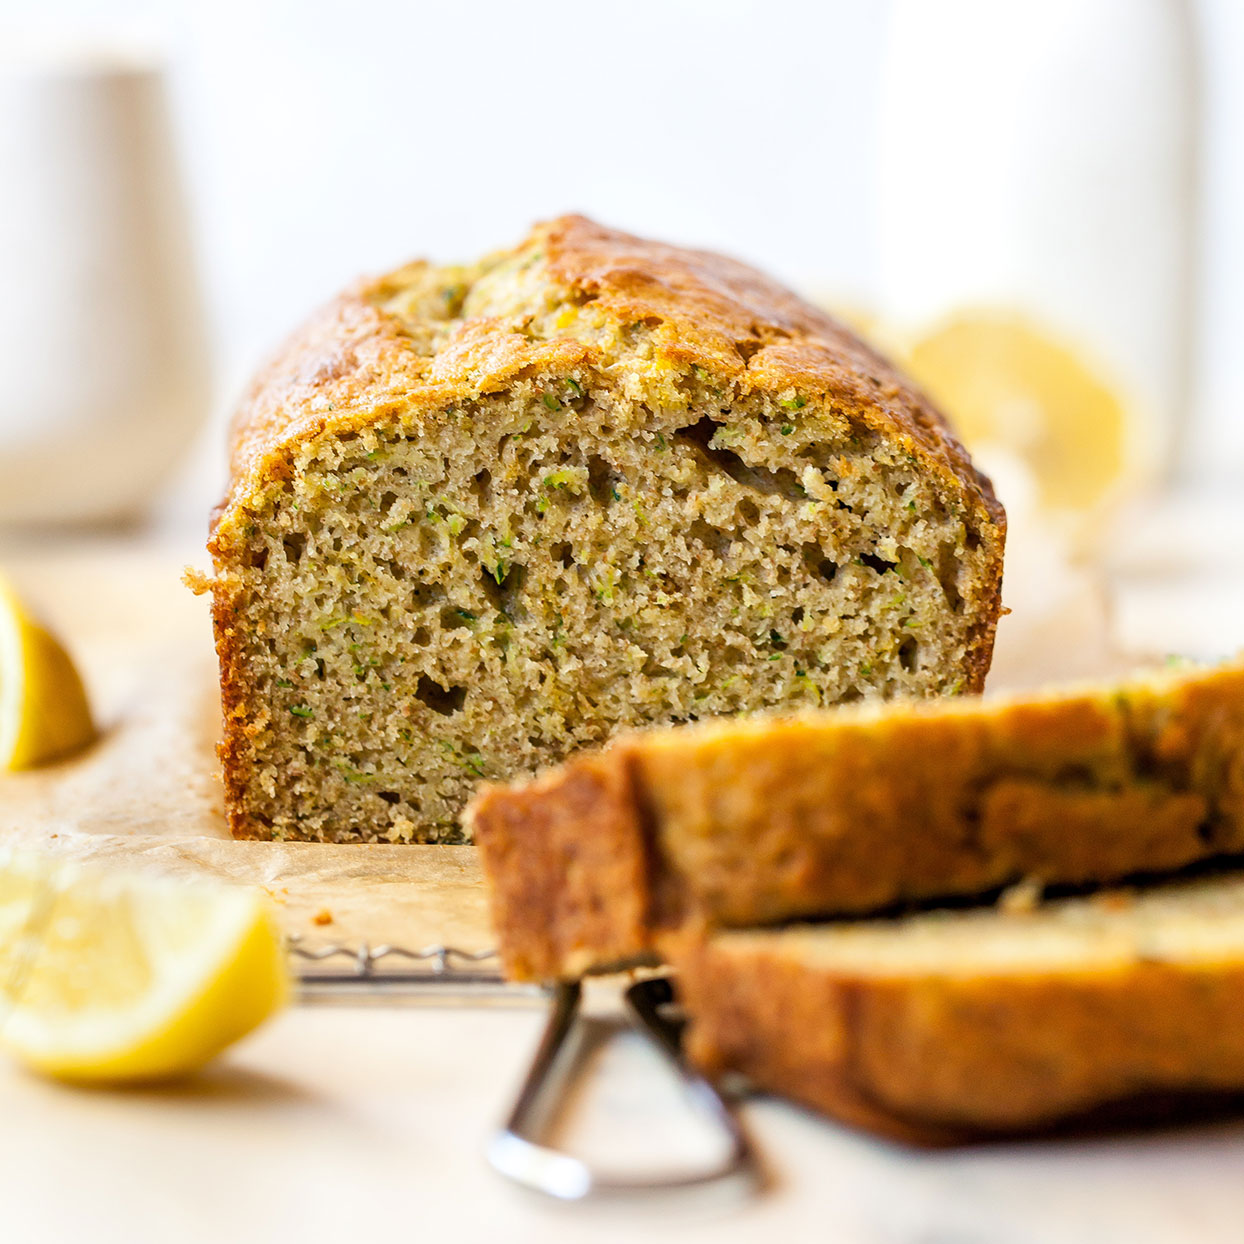 Lemon Zucchini Bread Trusted Brands